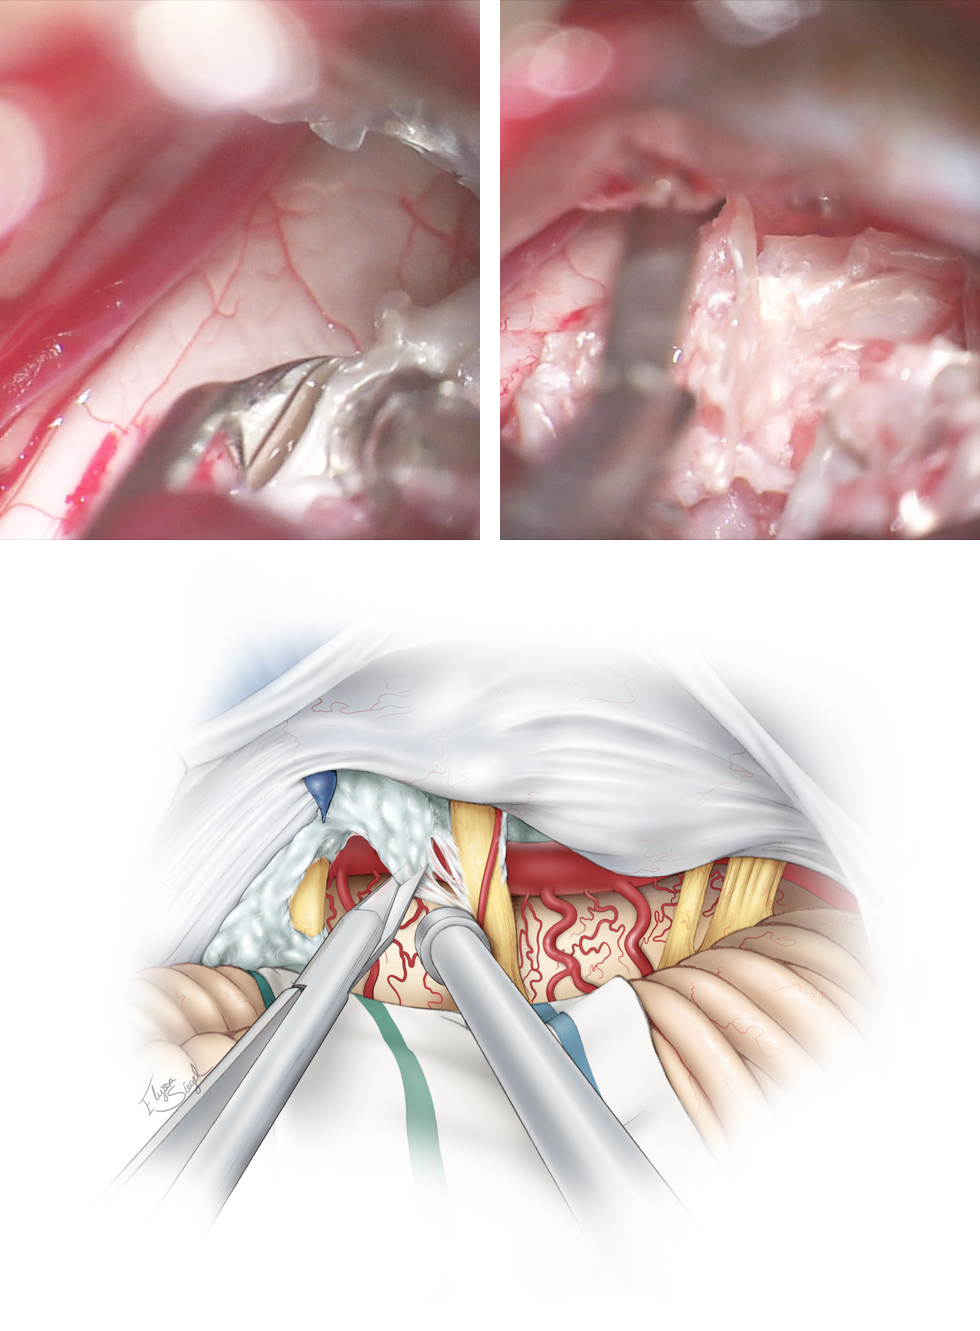 """Figure 10: Tumor debulking proceeds from medial to lateral directions within the CP angle. I use an angled """"pancake dissector"""" to mobilize the capsule (left upper image), and then use the pituitary rongeurs to remove the tumor flakes mobilized into the resection cavity (right upper image). Sharp dissection is used to excise the tumor capsule from the neighboring neurovascular structures (lower sketch). Although gentle removal of the capsule is attempted, aggressive handling of the cranial nerves is not advised. Encased perforating vessels are left untouched."""